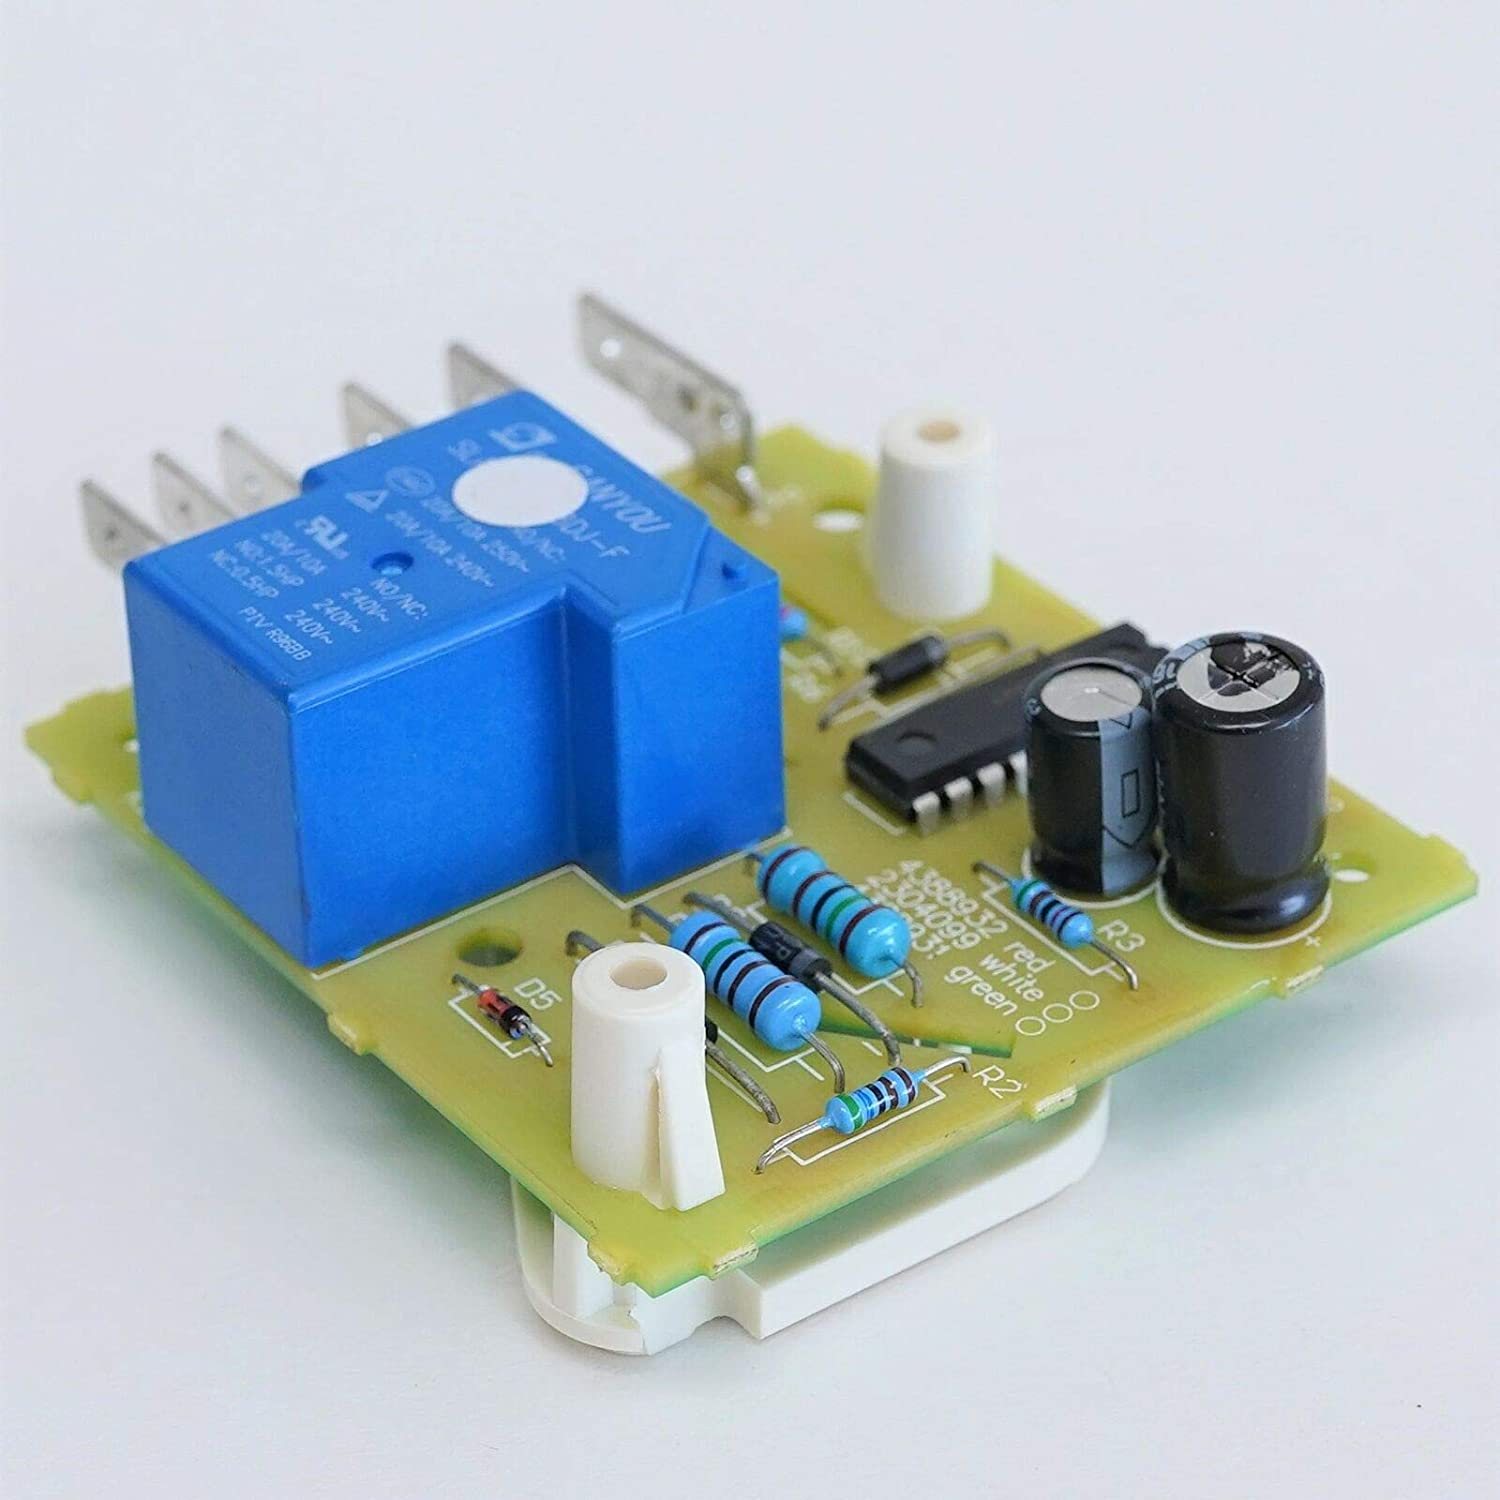 NEW WP2304099 Refrigerator Adaptive Control Board Replac Direct stock discount Brand new Defrost